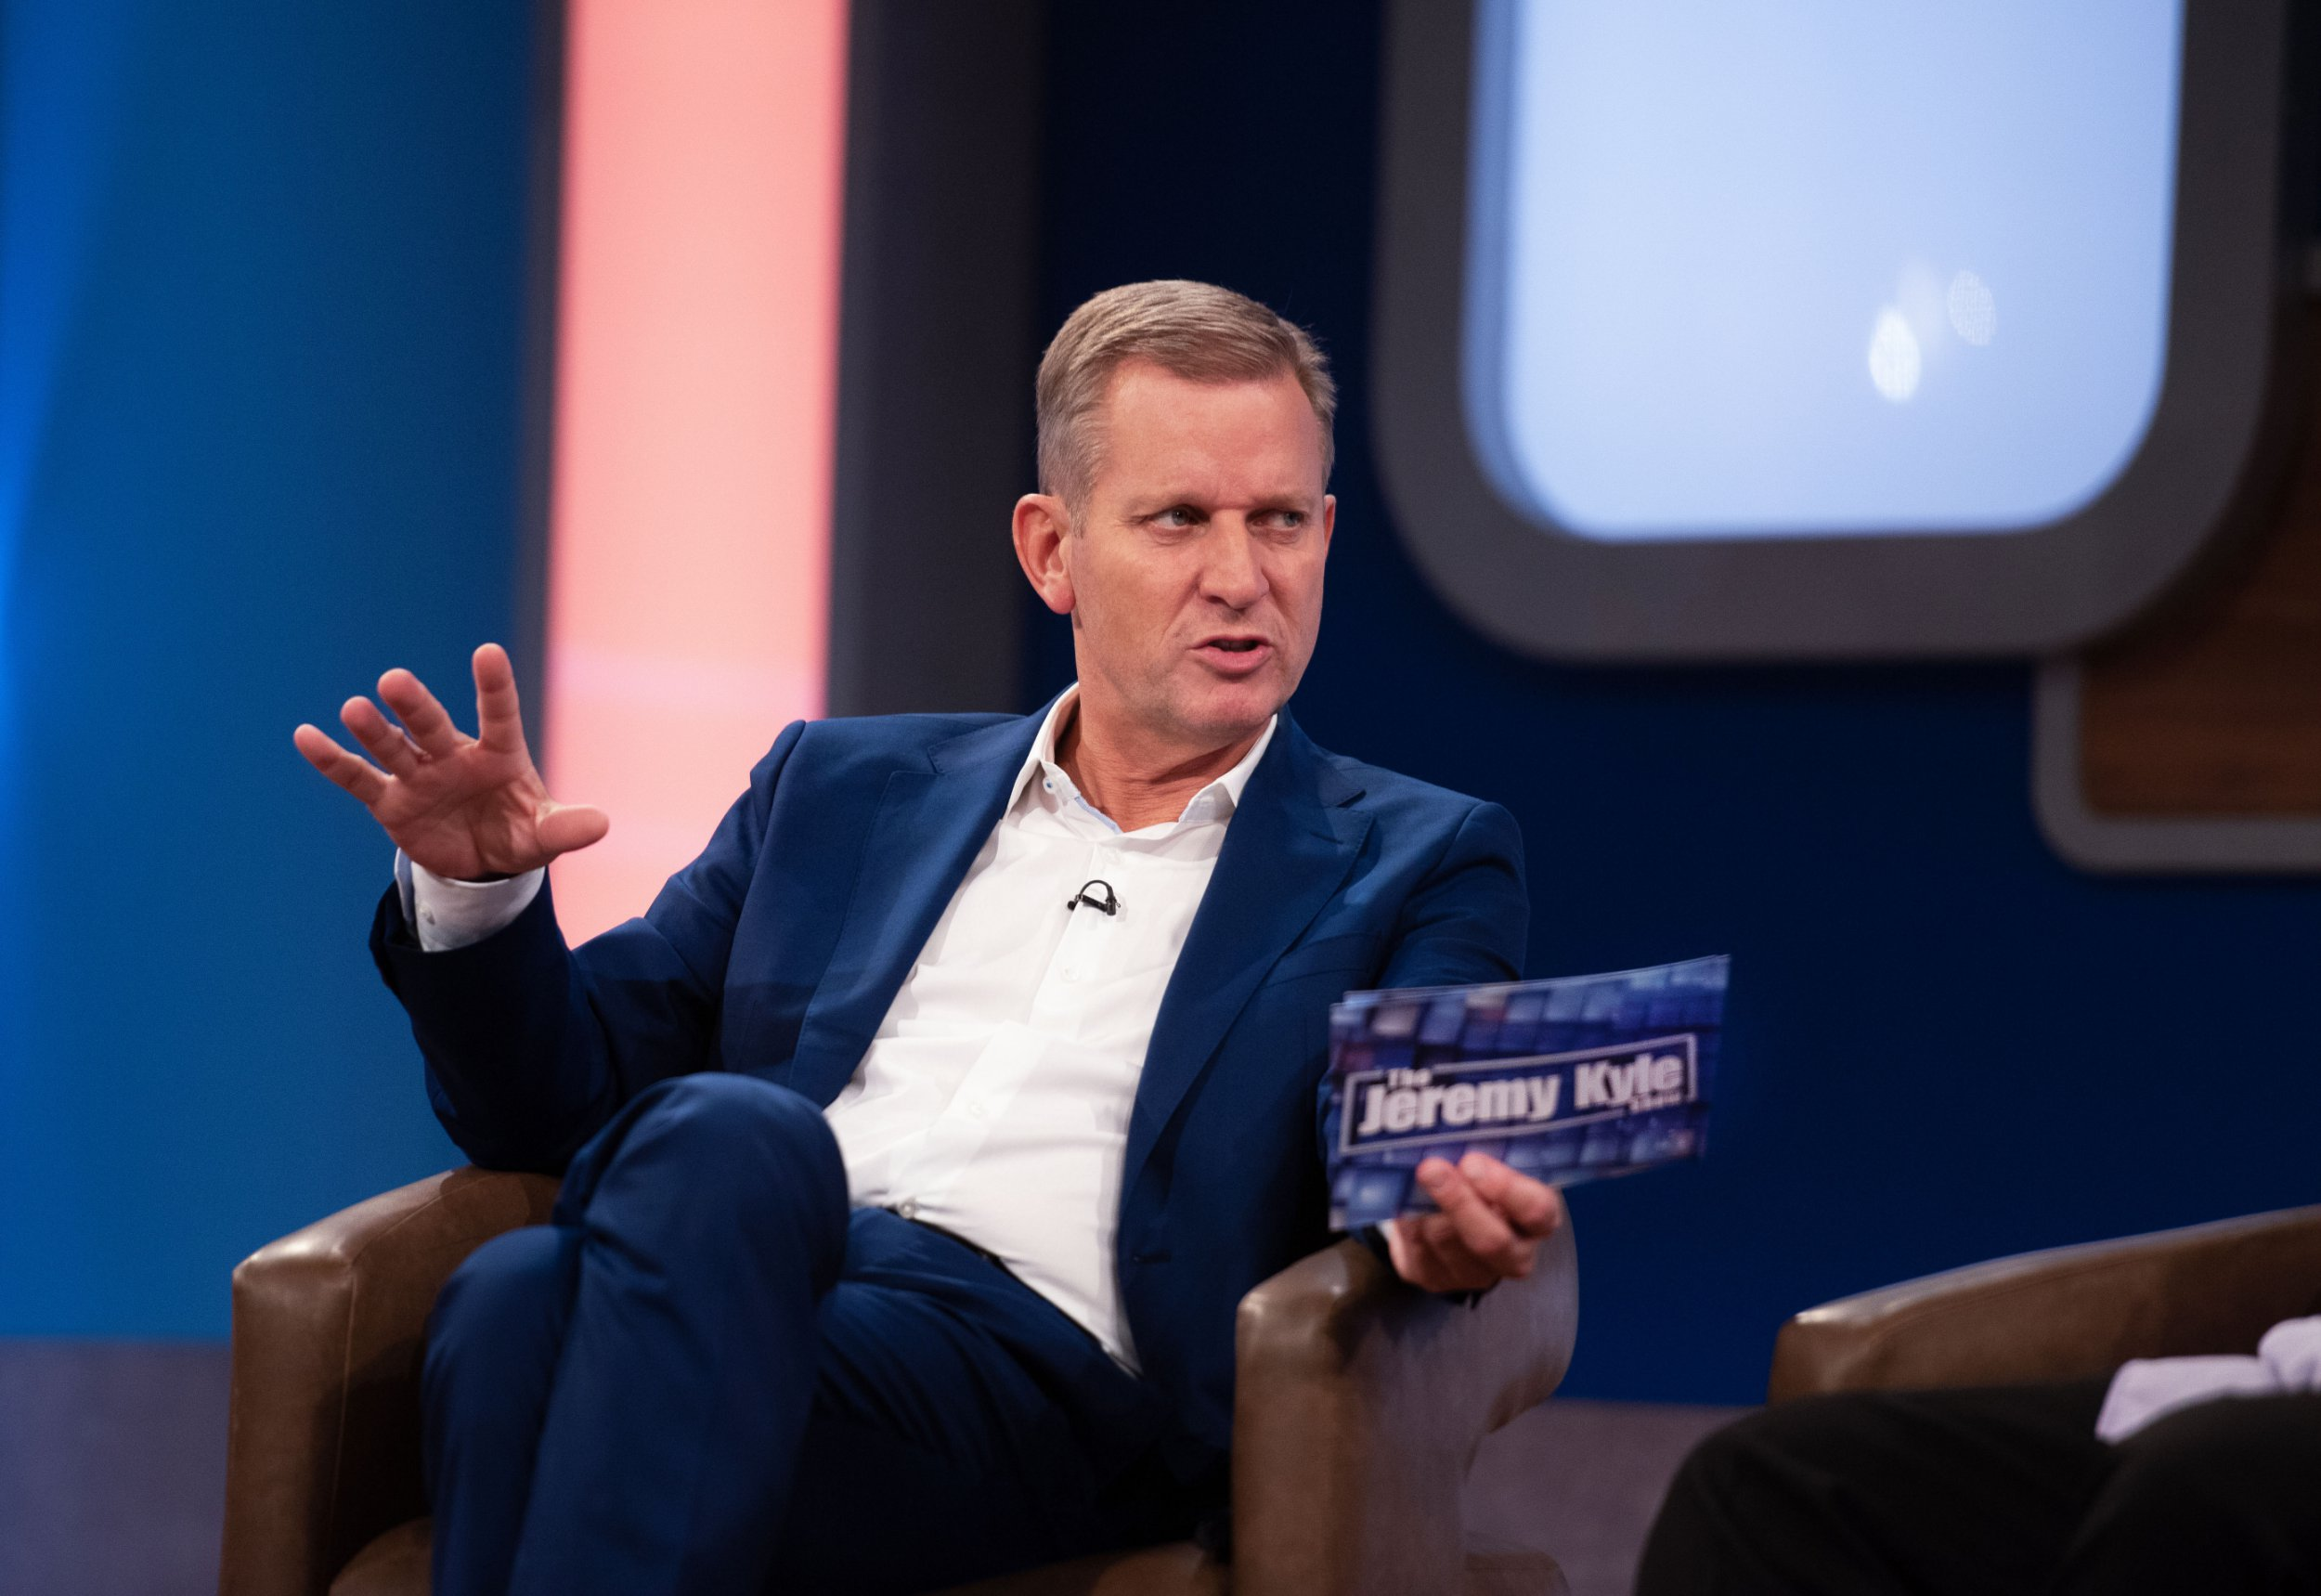 Jeremy Kyle researchers had to 'hang up' on vulnerable people and got in trouble 'for providing helpline numbers'